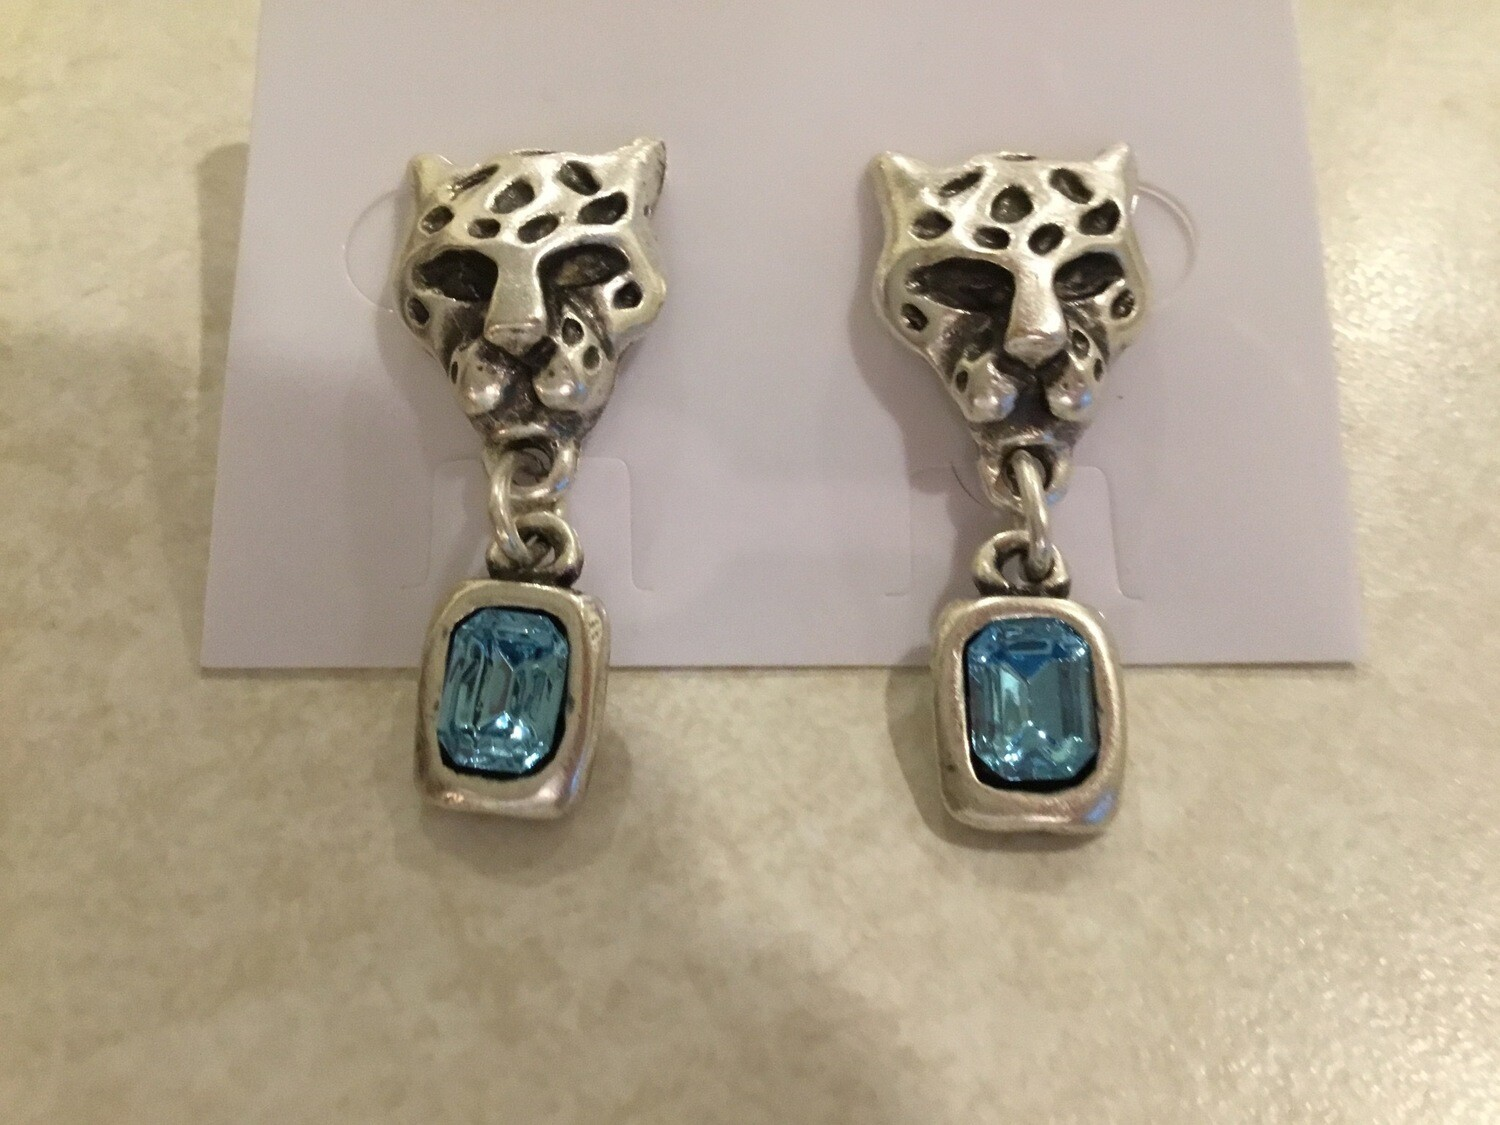 Handmade Pewter Earrings With Cheetah And Blue Crystals